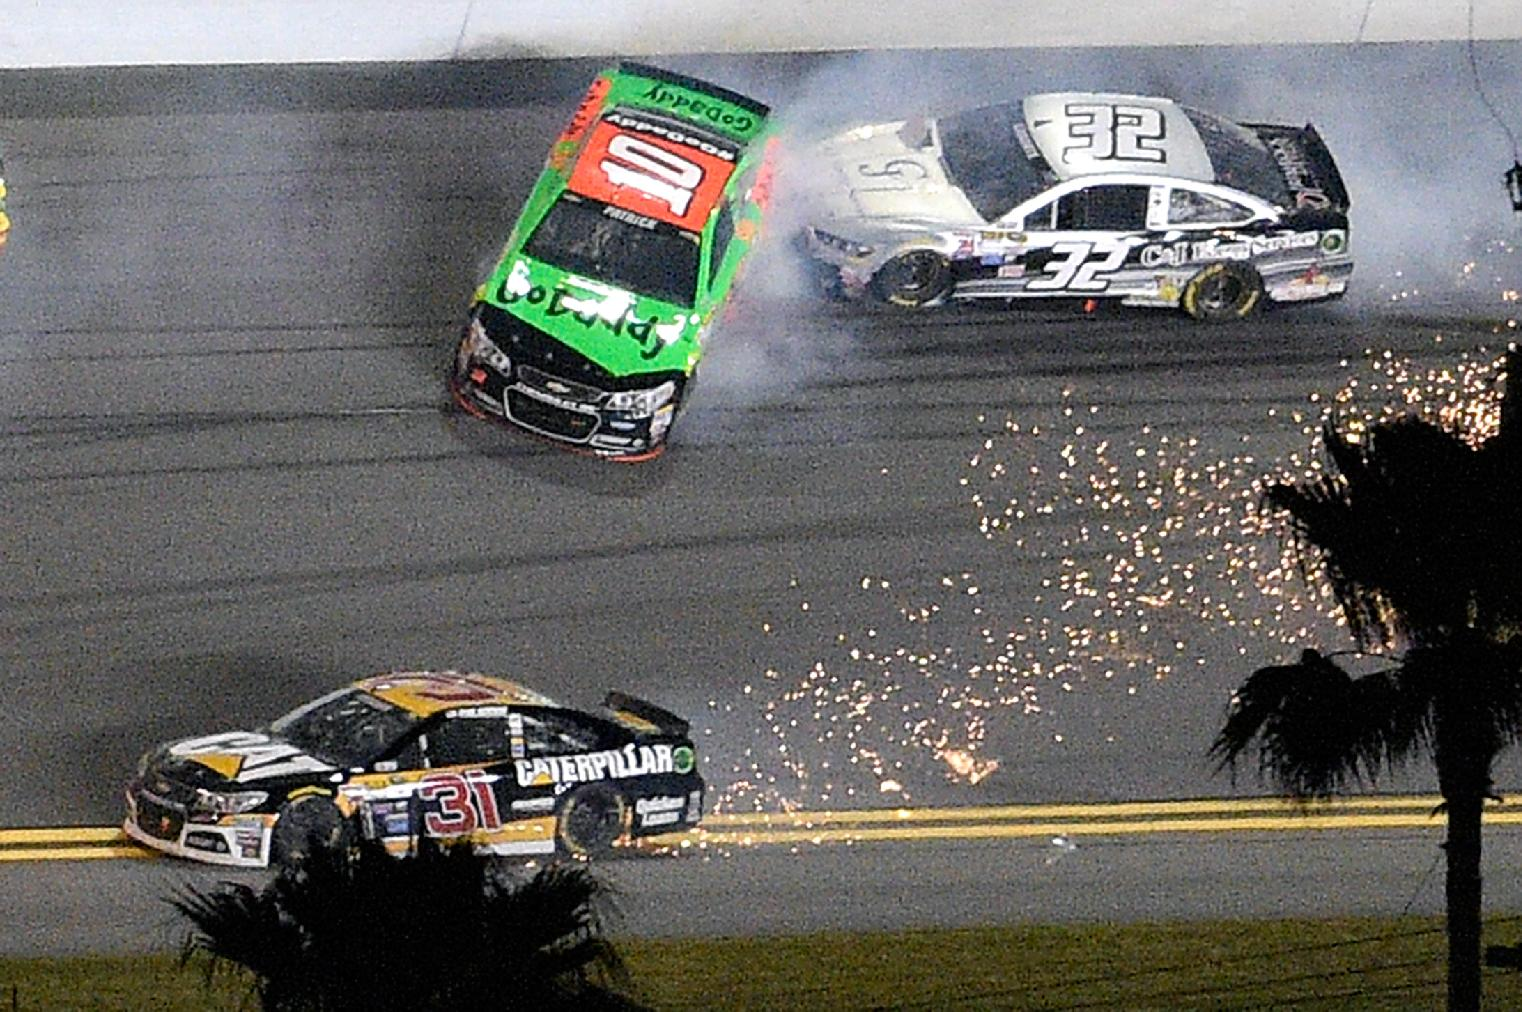 Fox, NBC ready to wave the green flag in NASCAR coverage